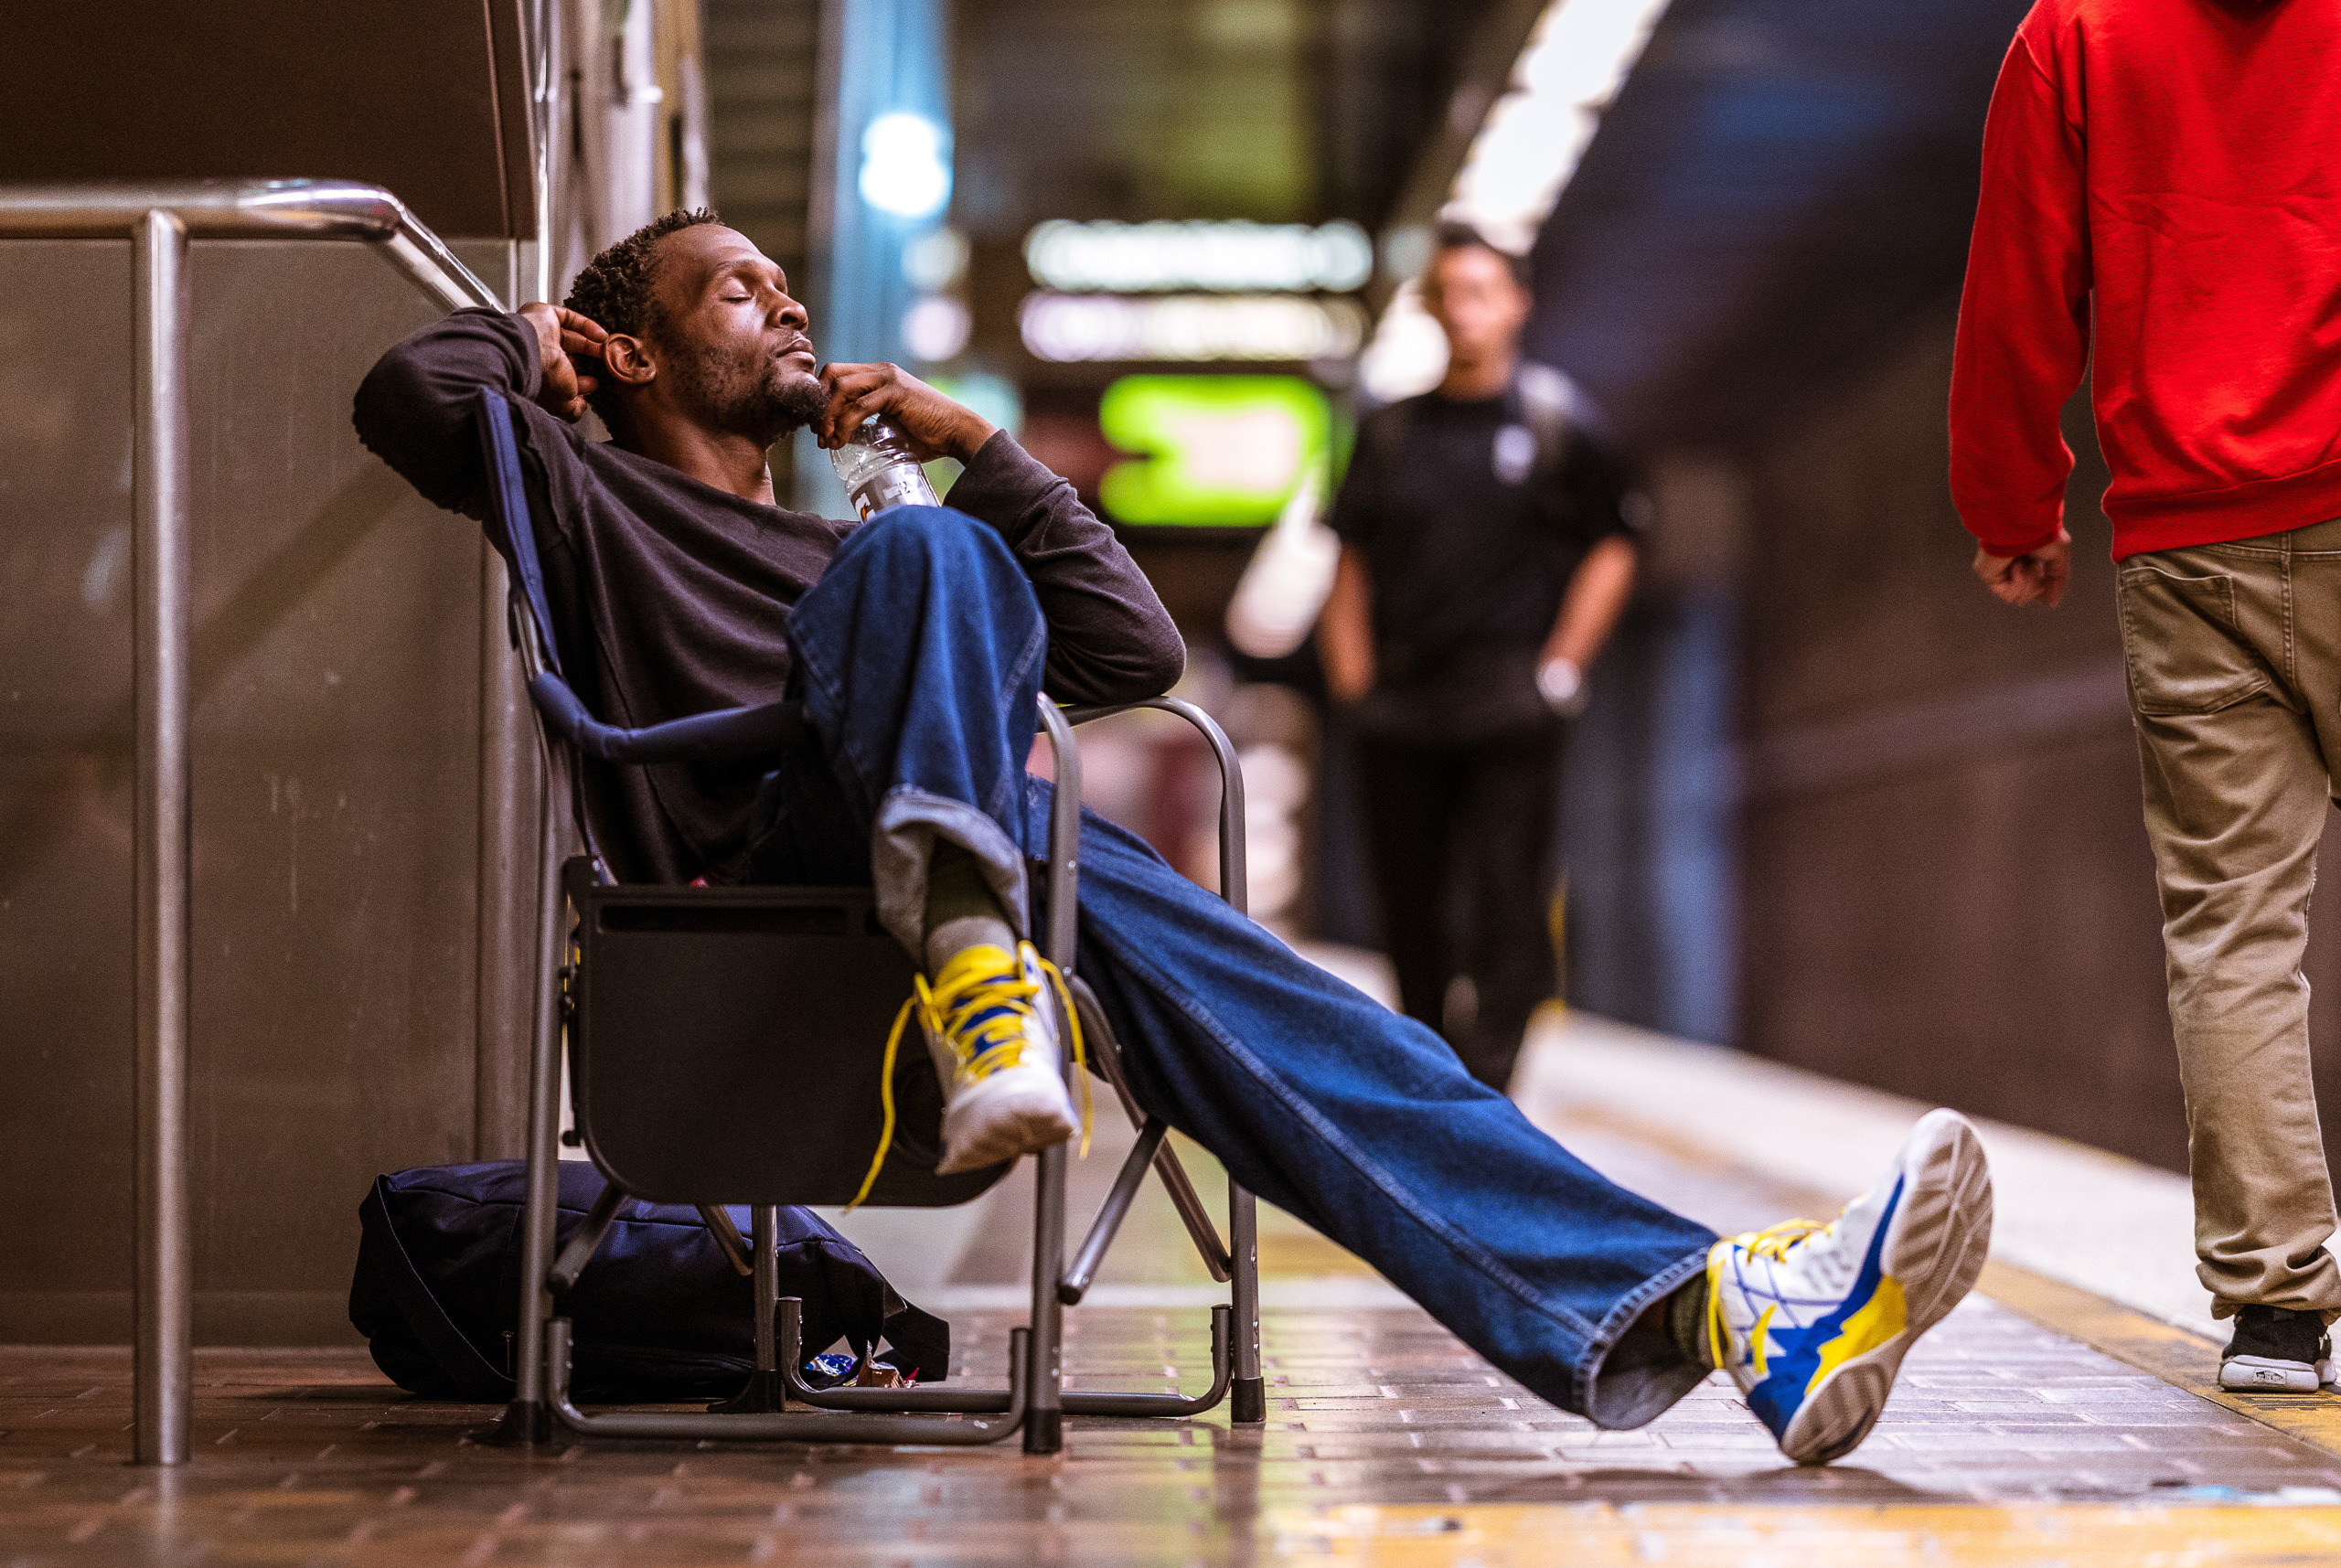 a man waiting at the LA Metro's 7th Street Metro Center (Julian Dixon) relaxes in a portable chair with one leg outstretched, the other curled over the side of the chair, and a bottle of Gatorade held near his head